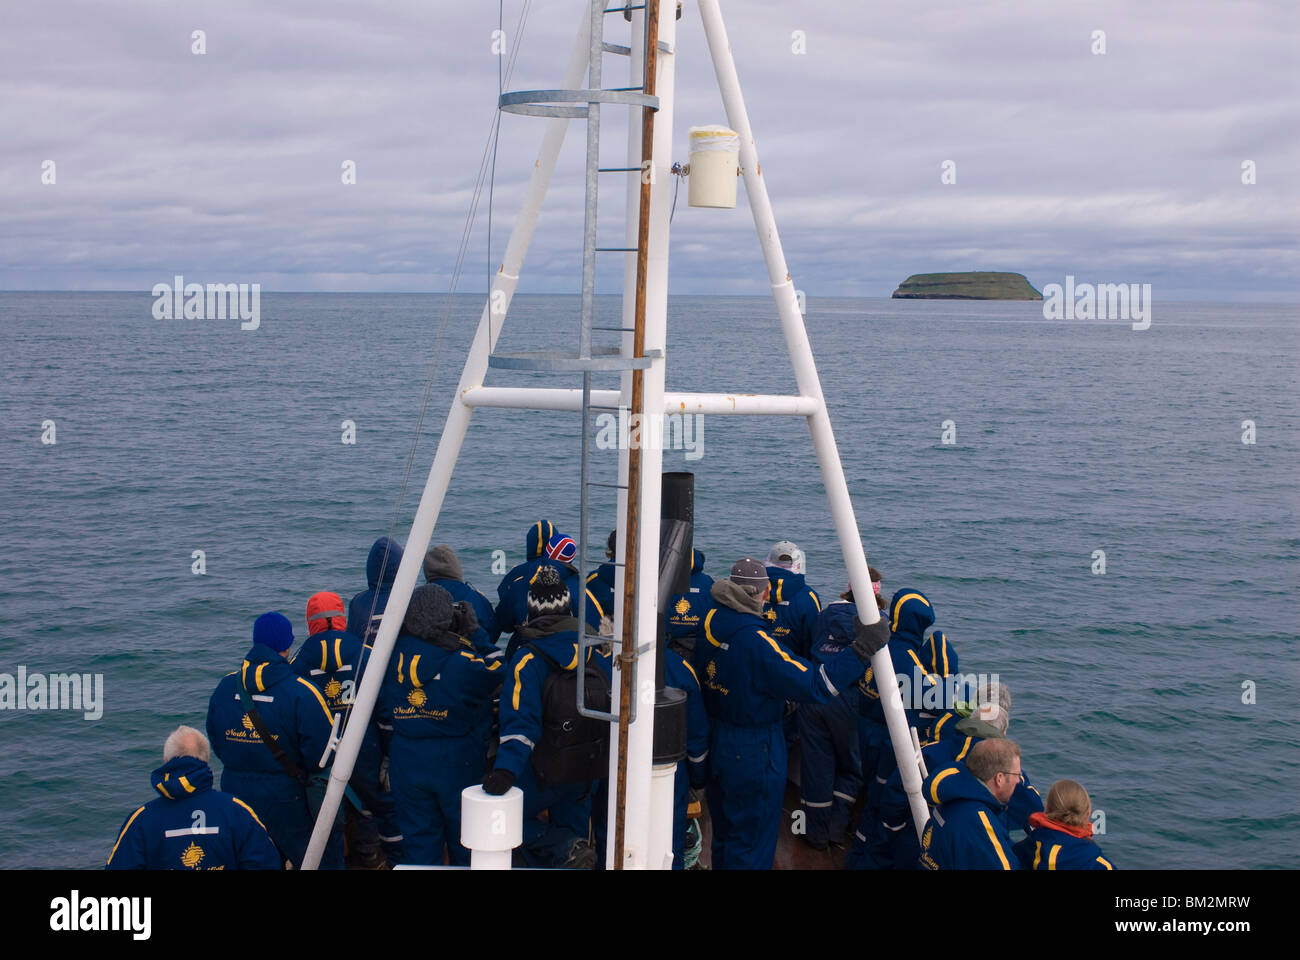 Trawler with tourists on their way to watch whales, Husavik, Iceland, Polar Regions - Stock Image